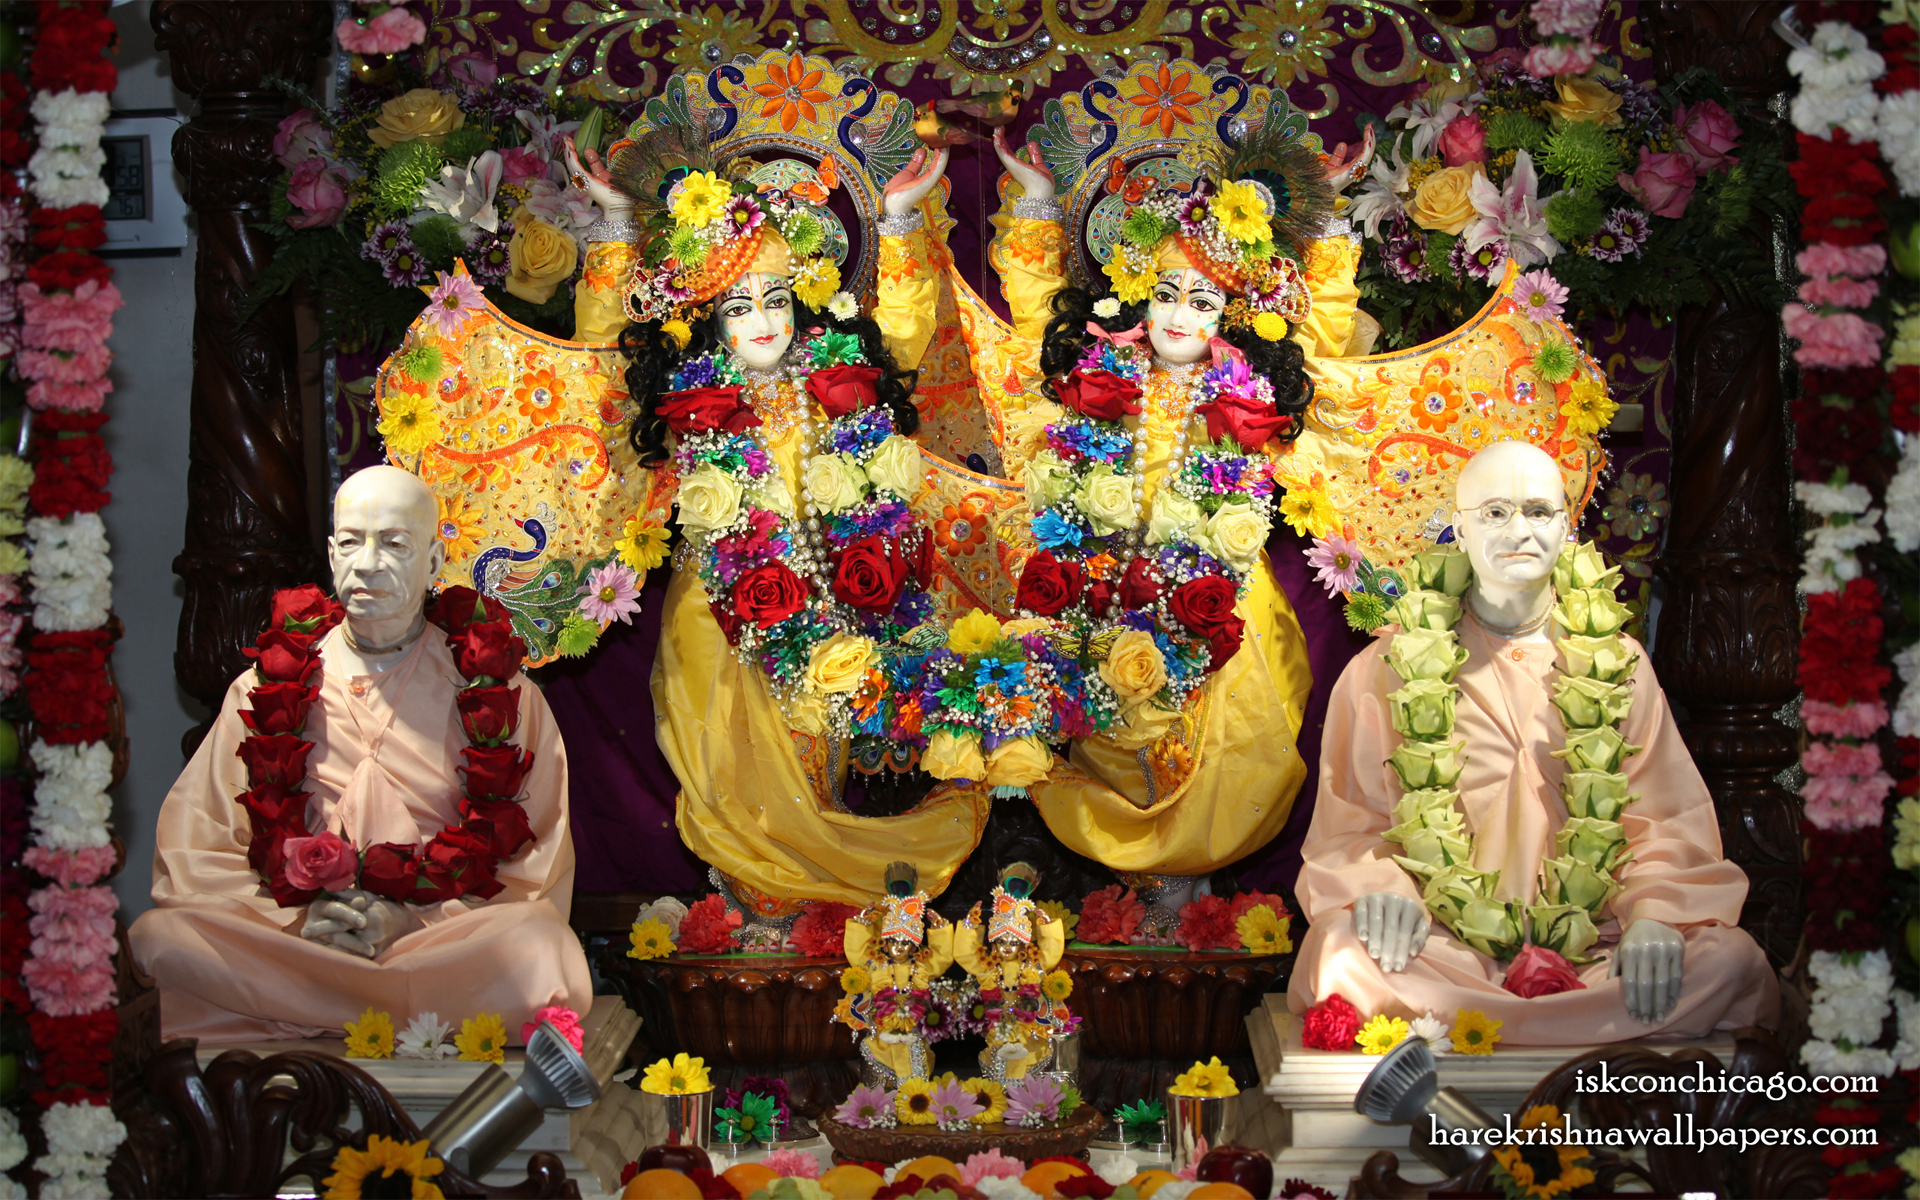 Sri Sri Gaura Nitai with Acharyas Wallpaper (004) Size 1920x1200 Download